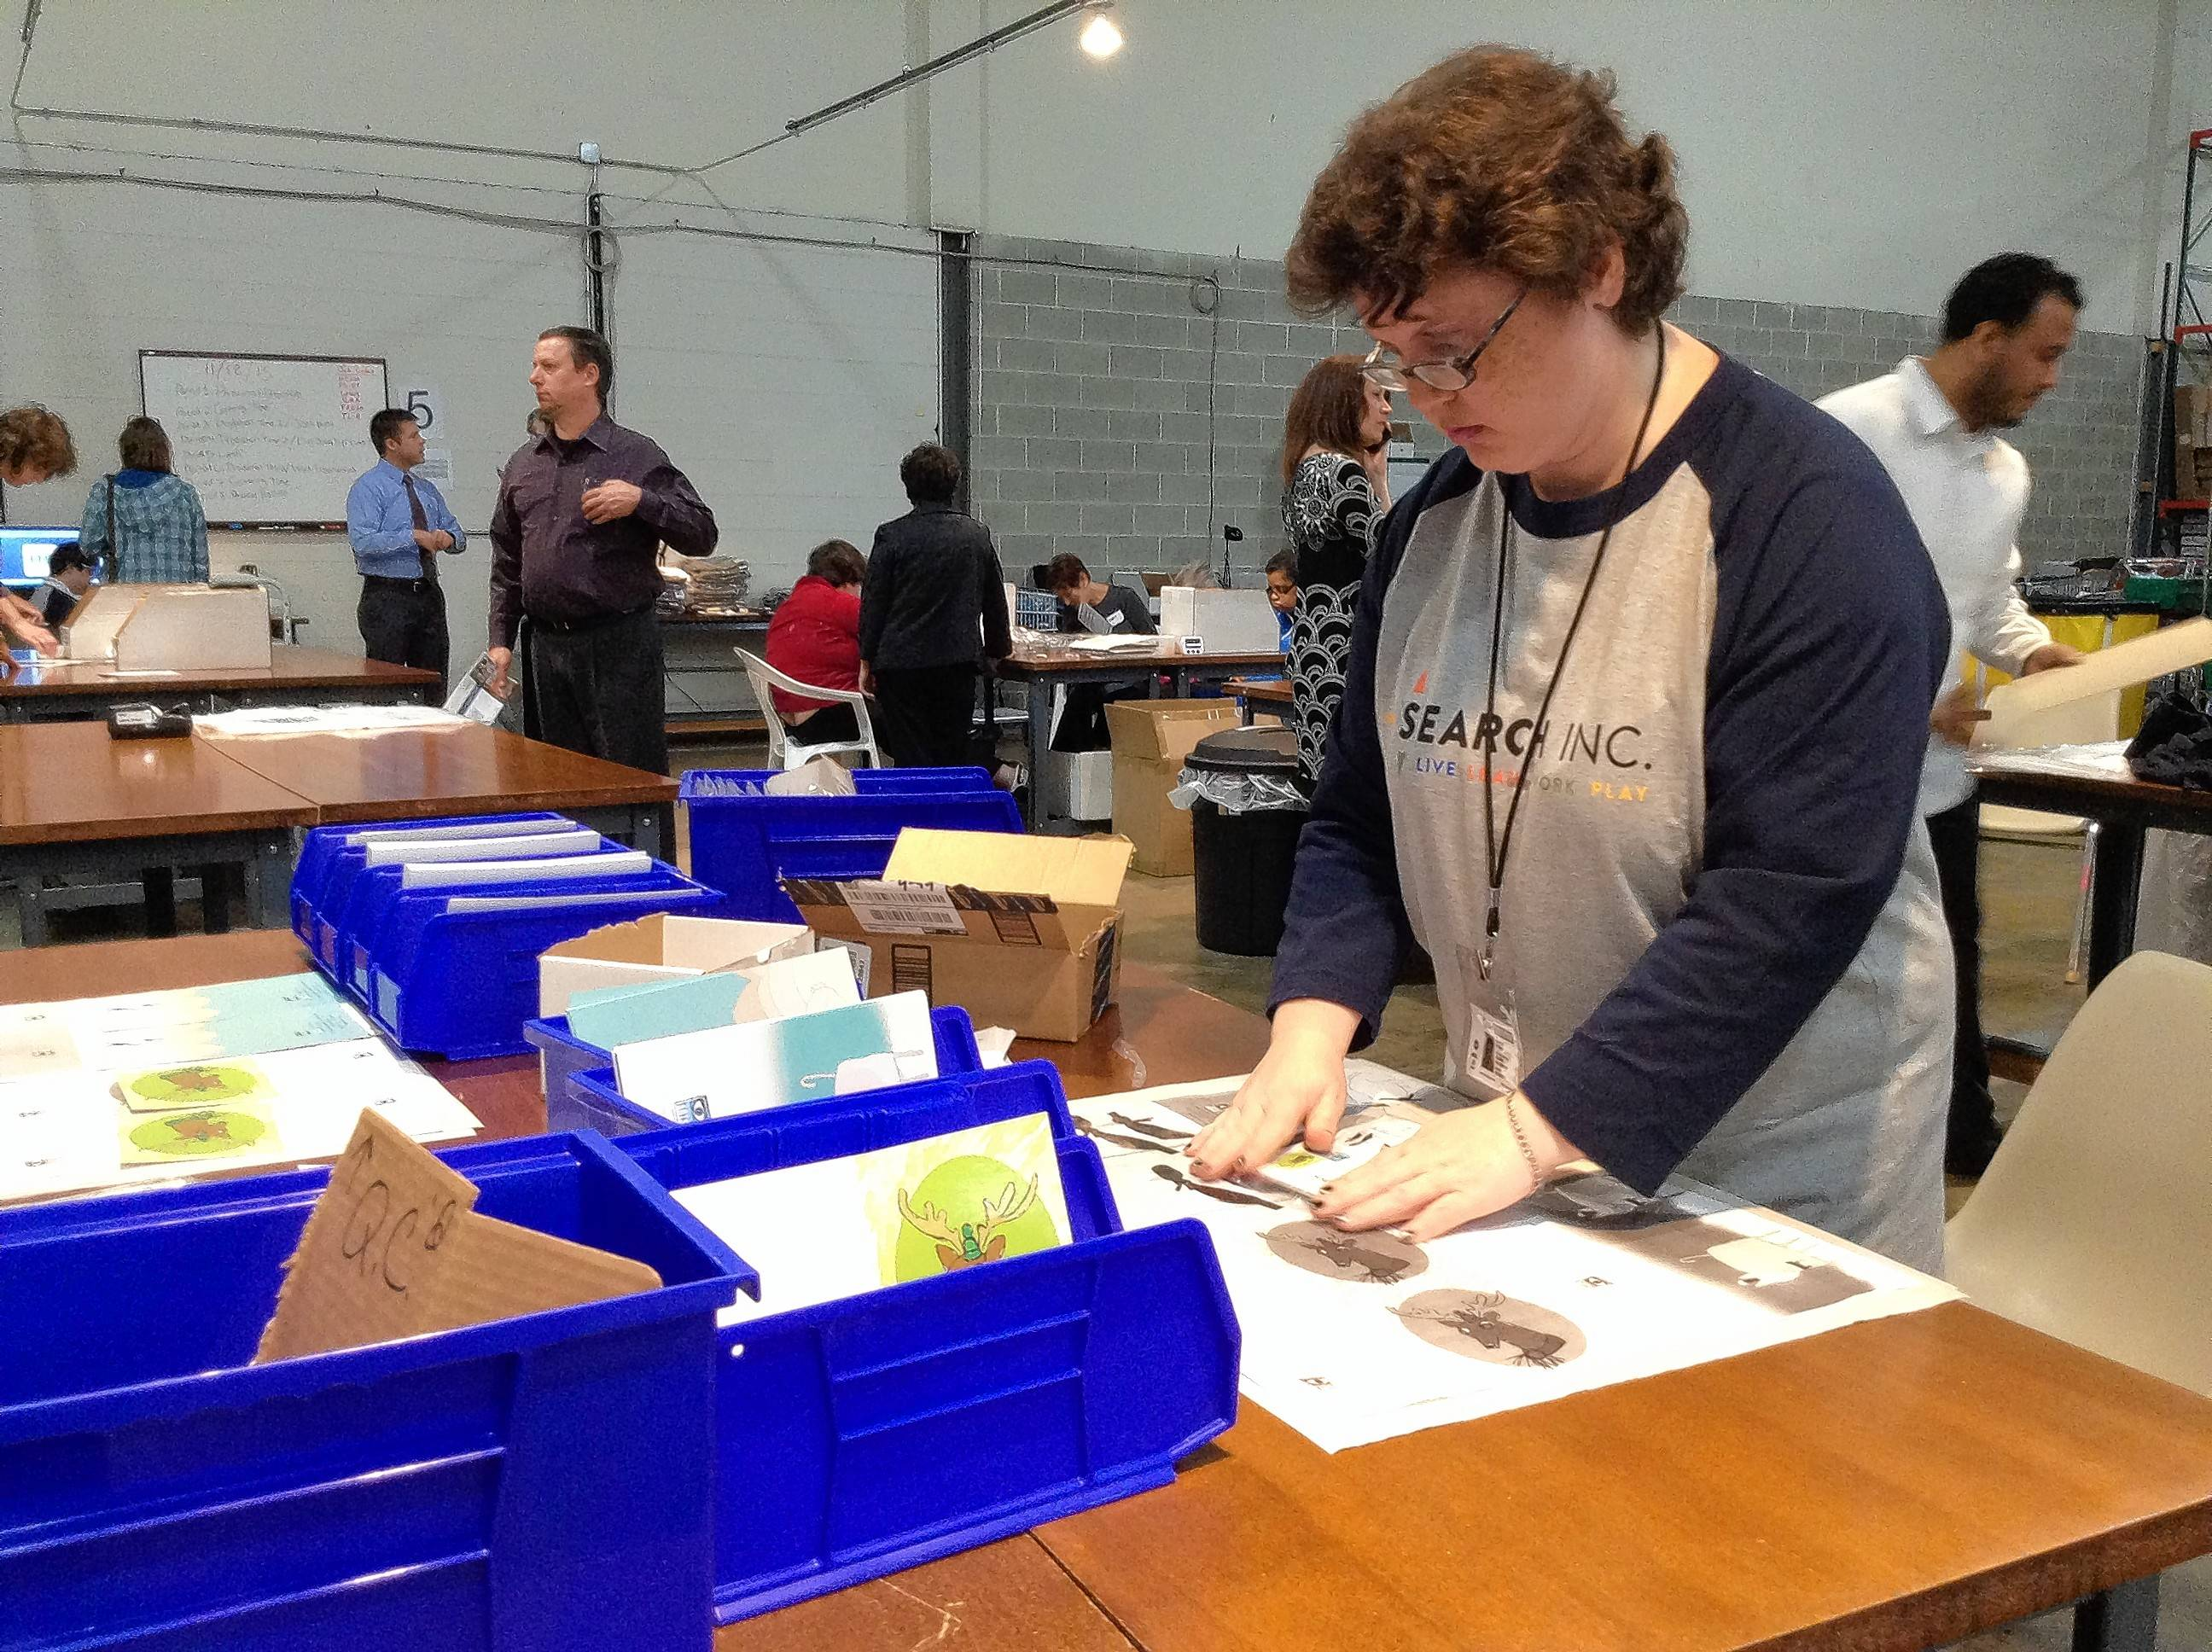 Alison Palsgrove, 42, of Mount Prospect, works on folding and packaging holiday greeting cards that will be sold at the Chicago retail store of Planet Access Co., which relocated its warehouse from Waukegan to Des Plaines.